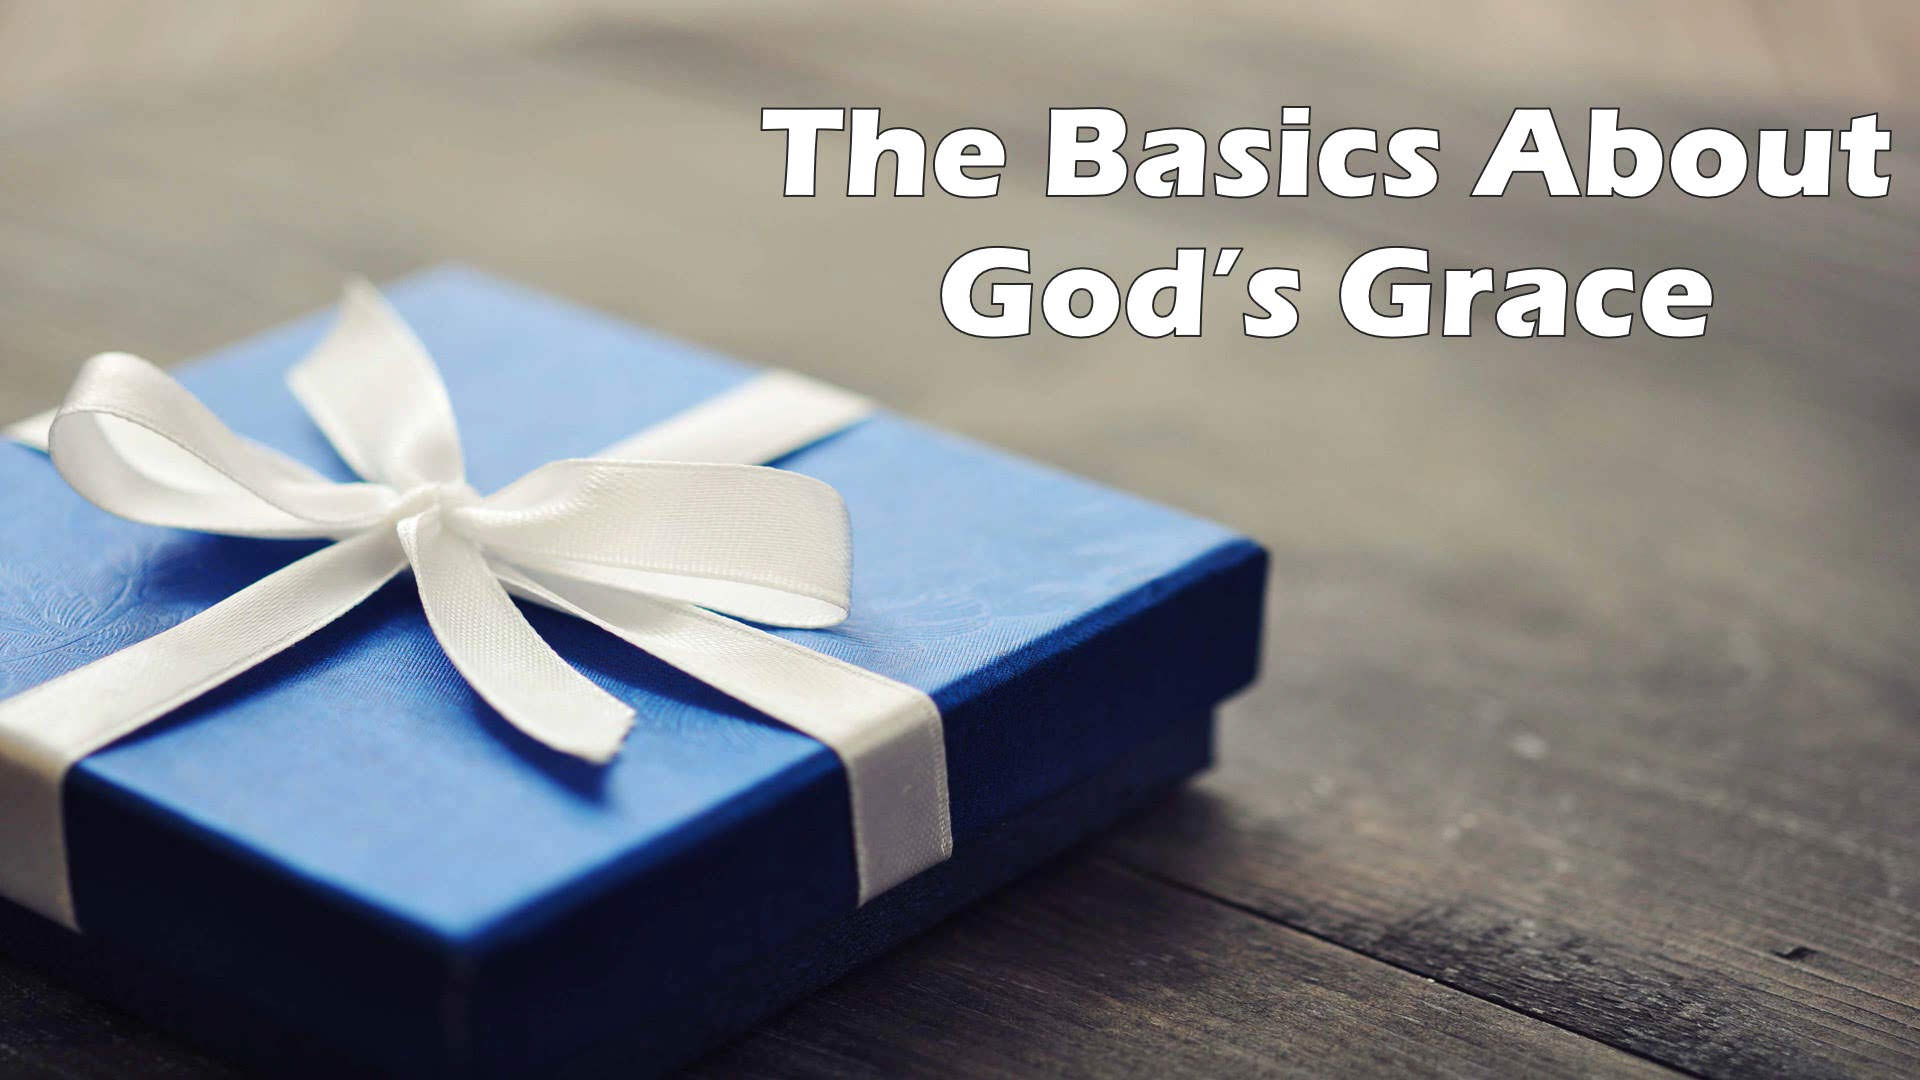 The Basics About God's Grace